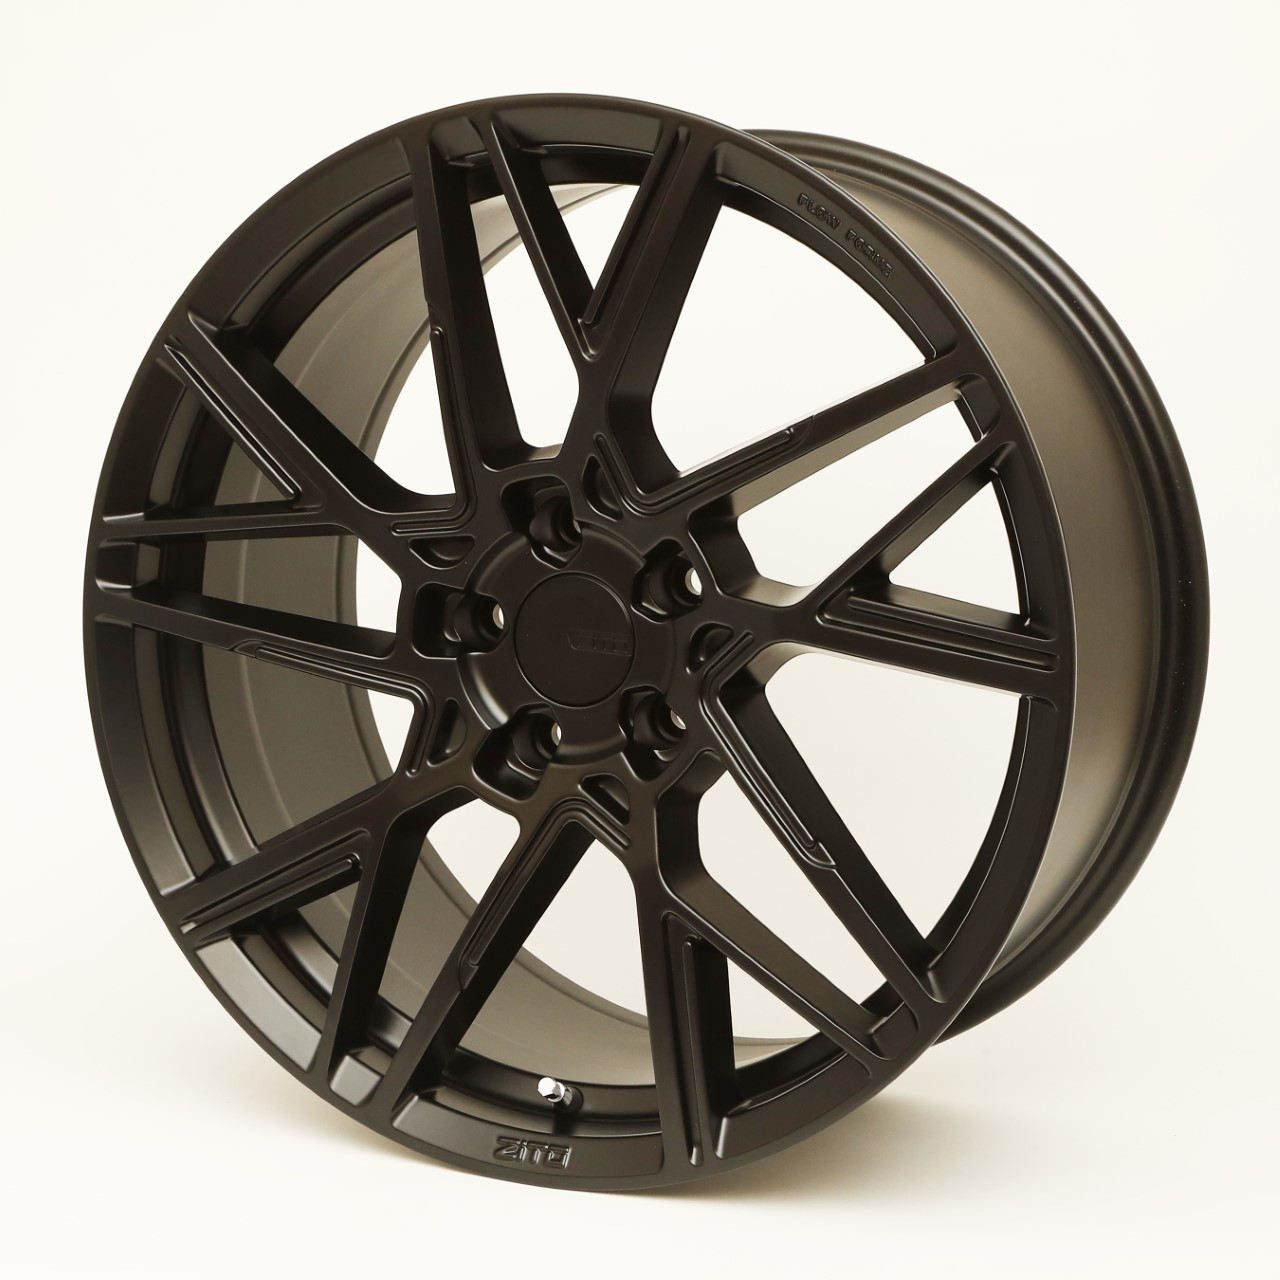 "NEW 19"" ZITO ZF-X FLOW FORMED ALLOY WHEELS IN SATIN BLACK WITH DEEPER CONCAVE 9.5"" REAR"